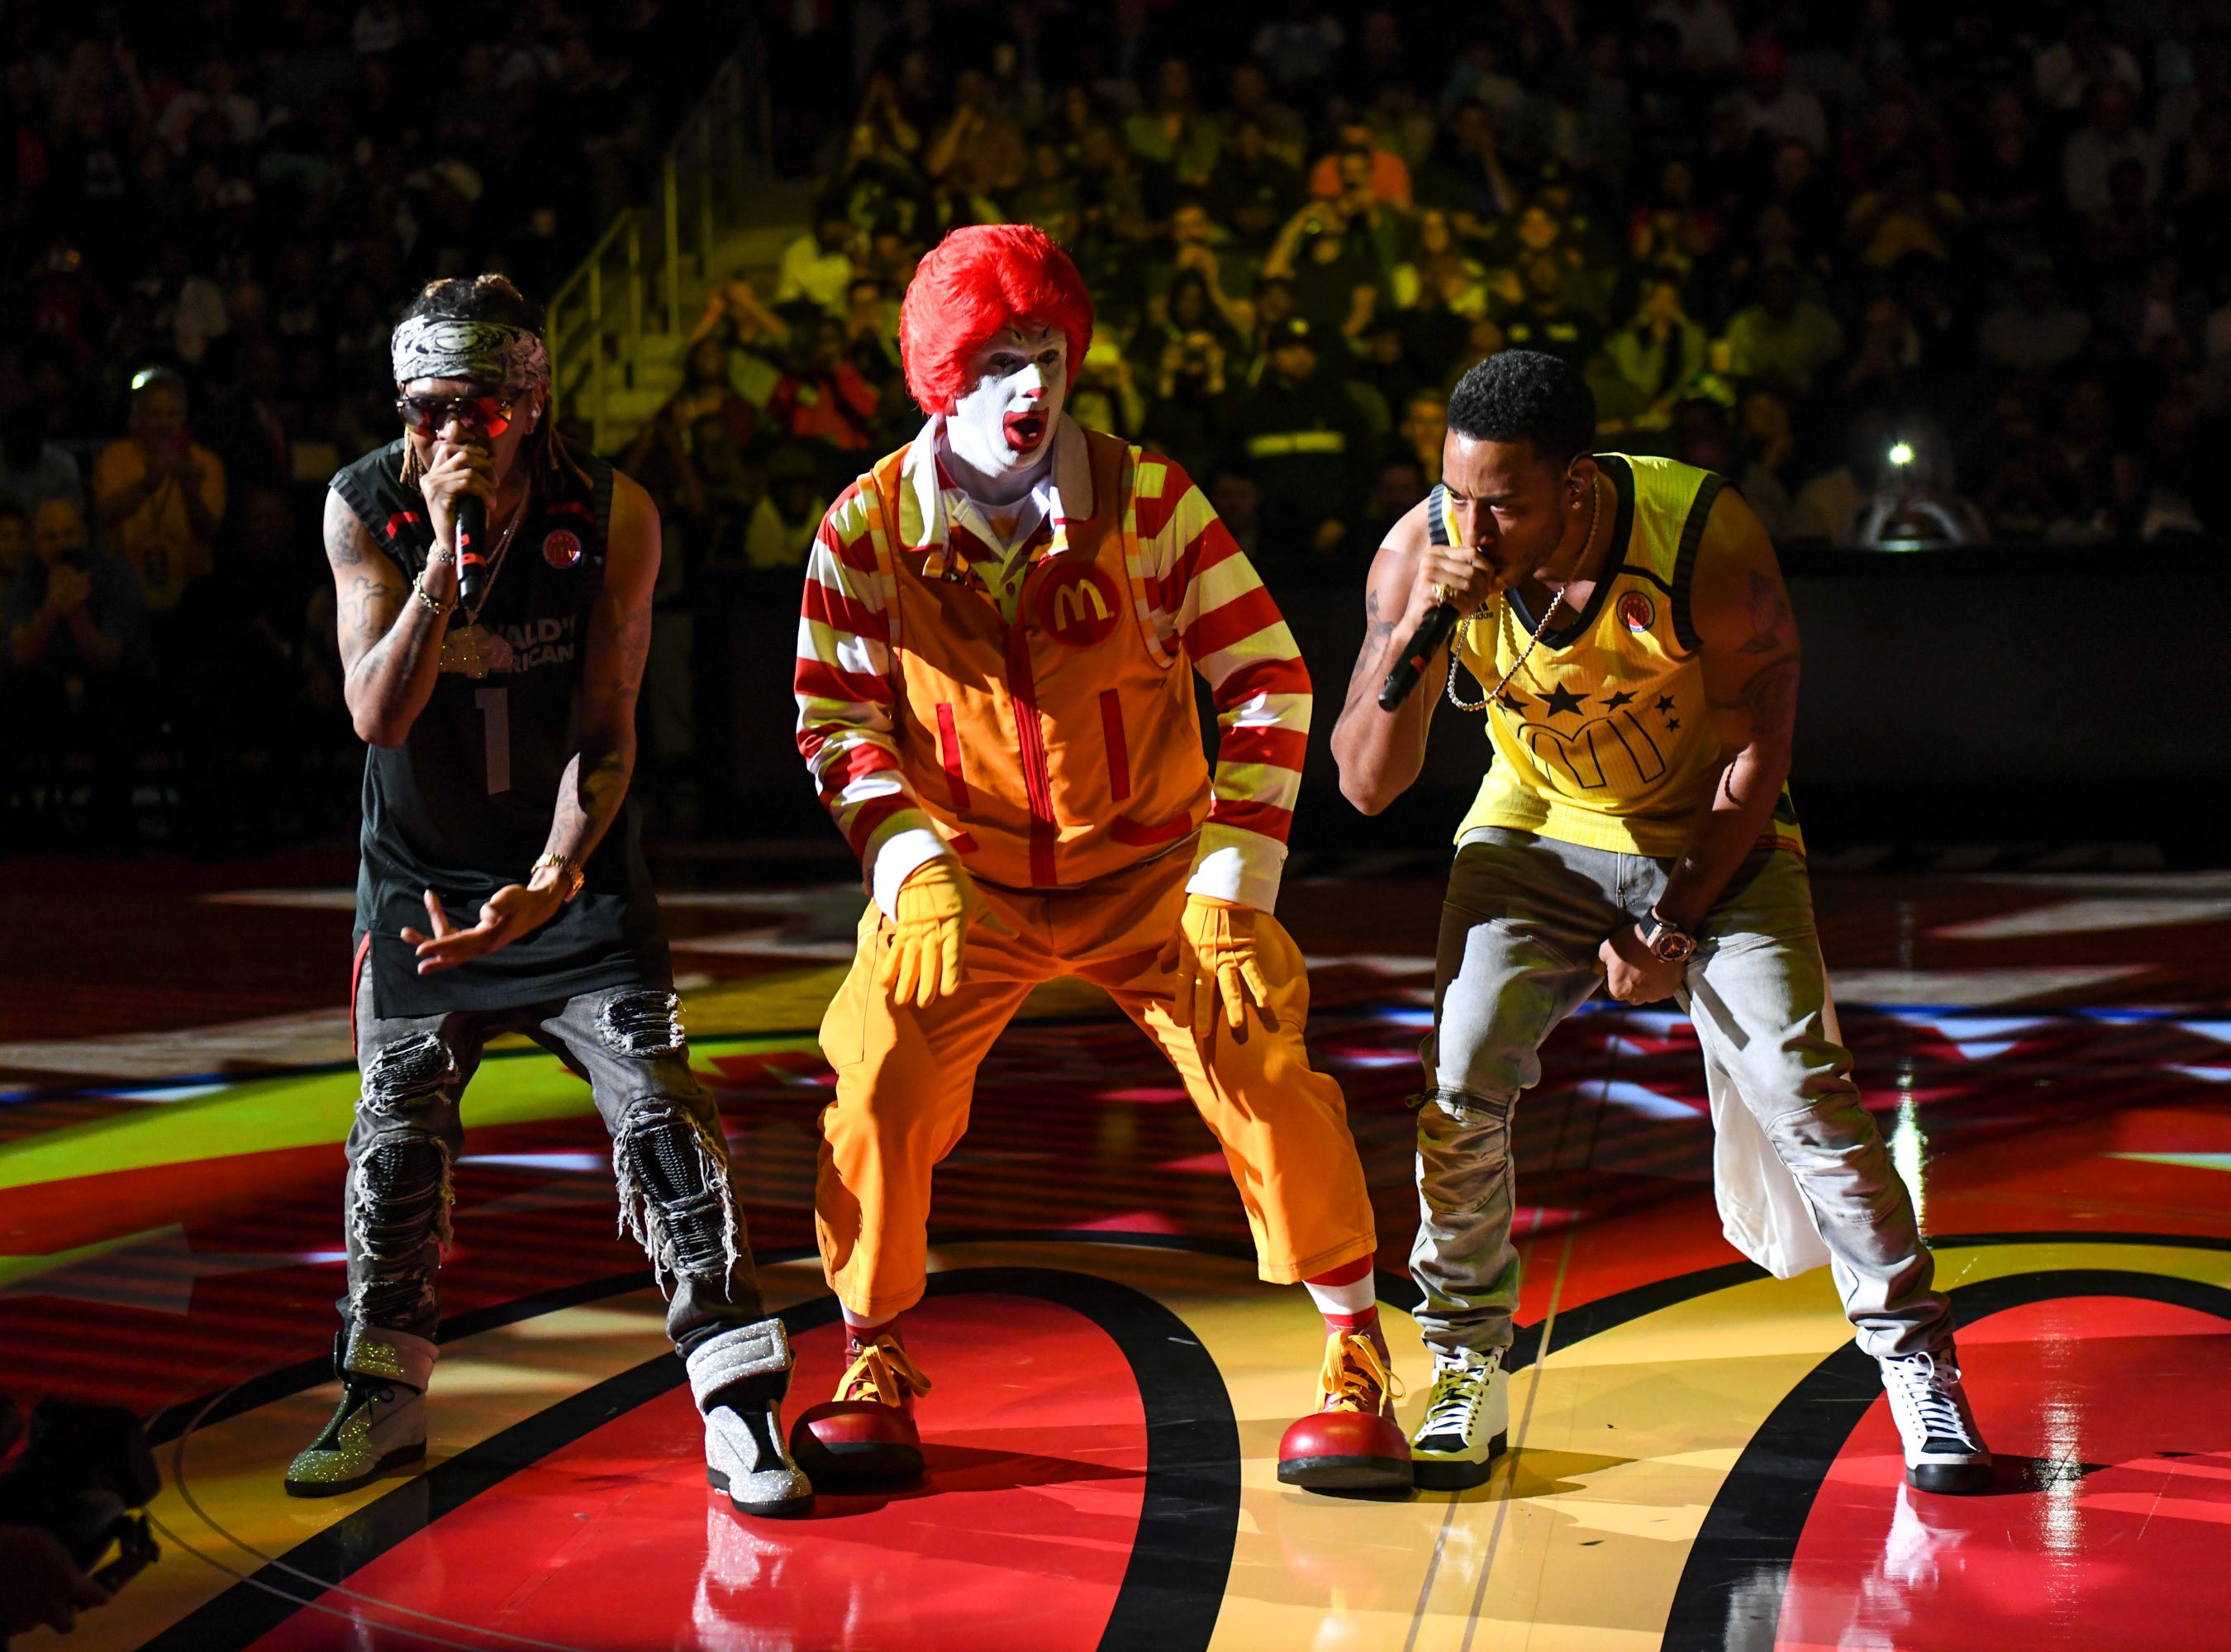 March 28: In an unlikely duo, Ludacris and Ronald McDonald perform together at the 2018 McDonald's All American Games in Atlanta.